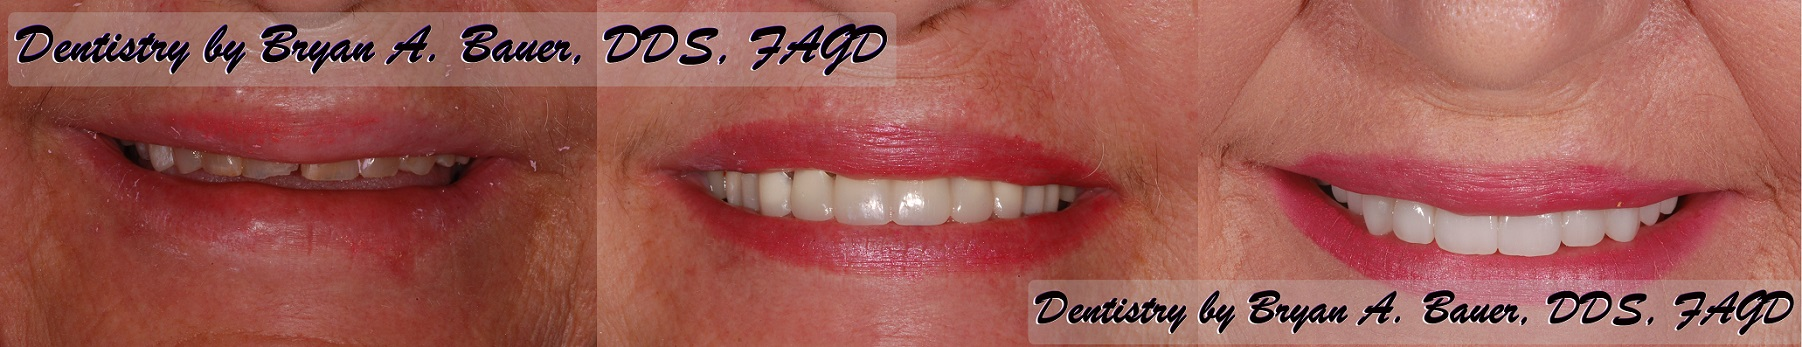 Worn down front teeth with temporary crowns in place.